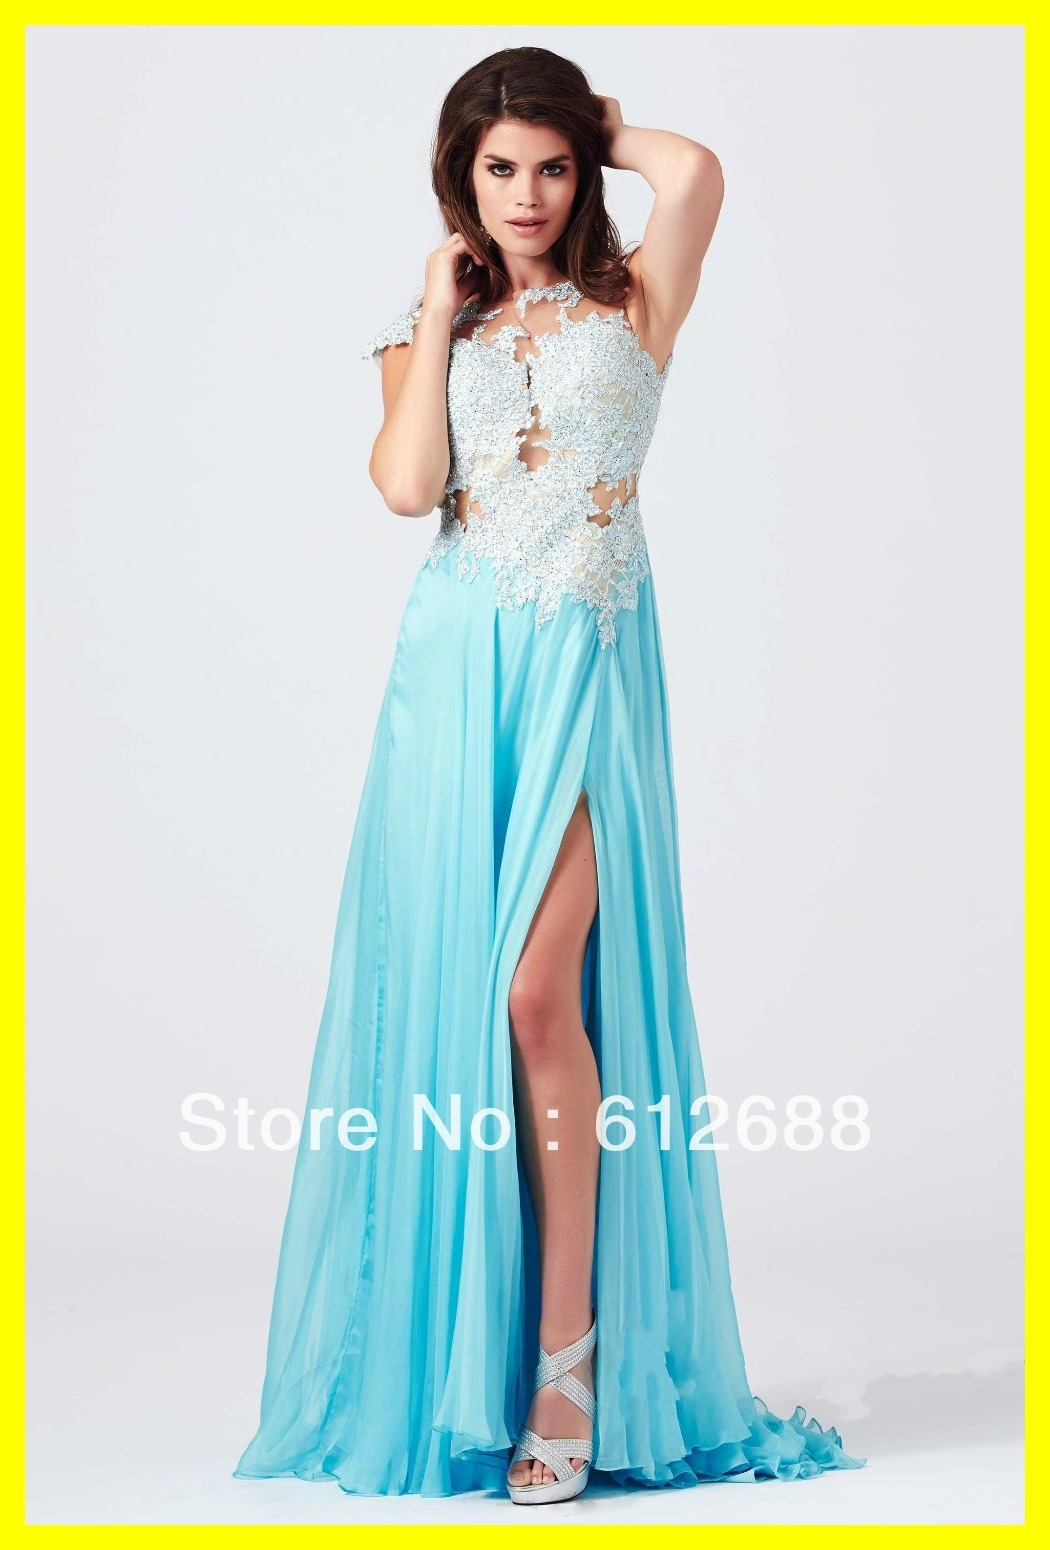 Where to buy prom dresses in raleigh nc